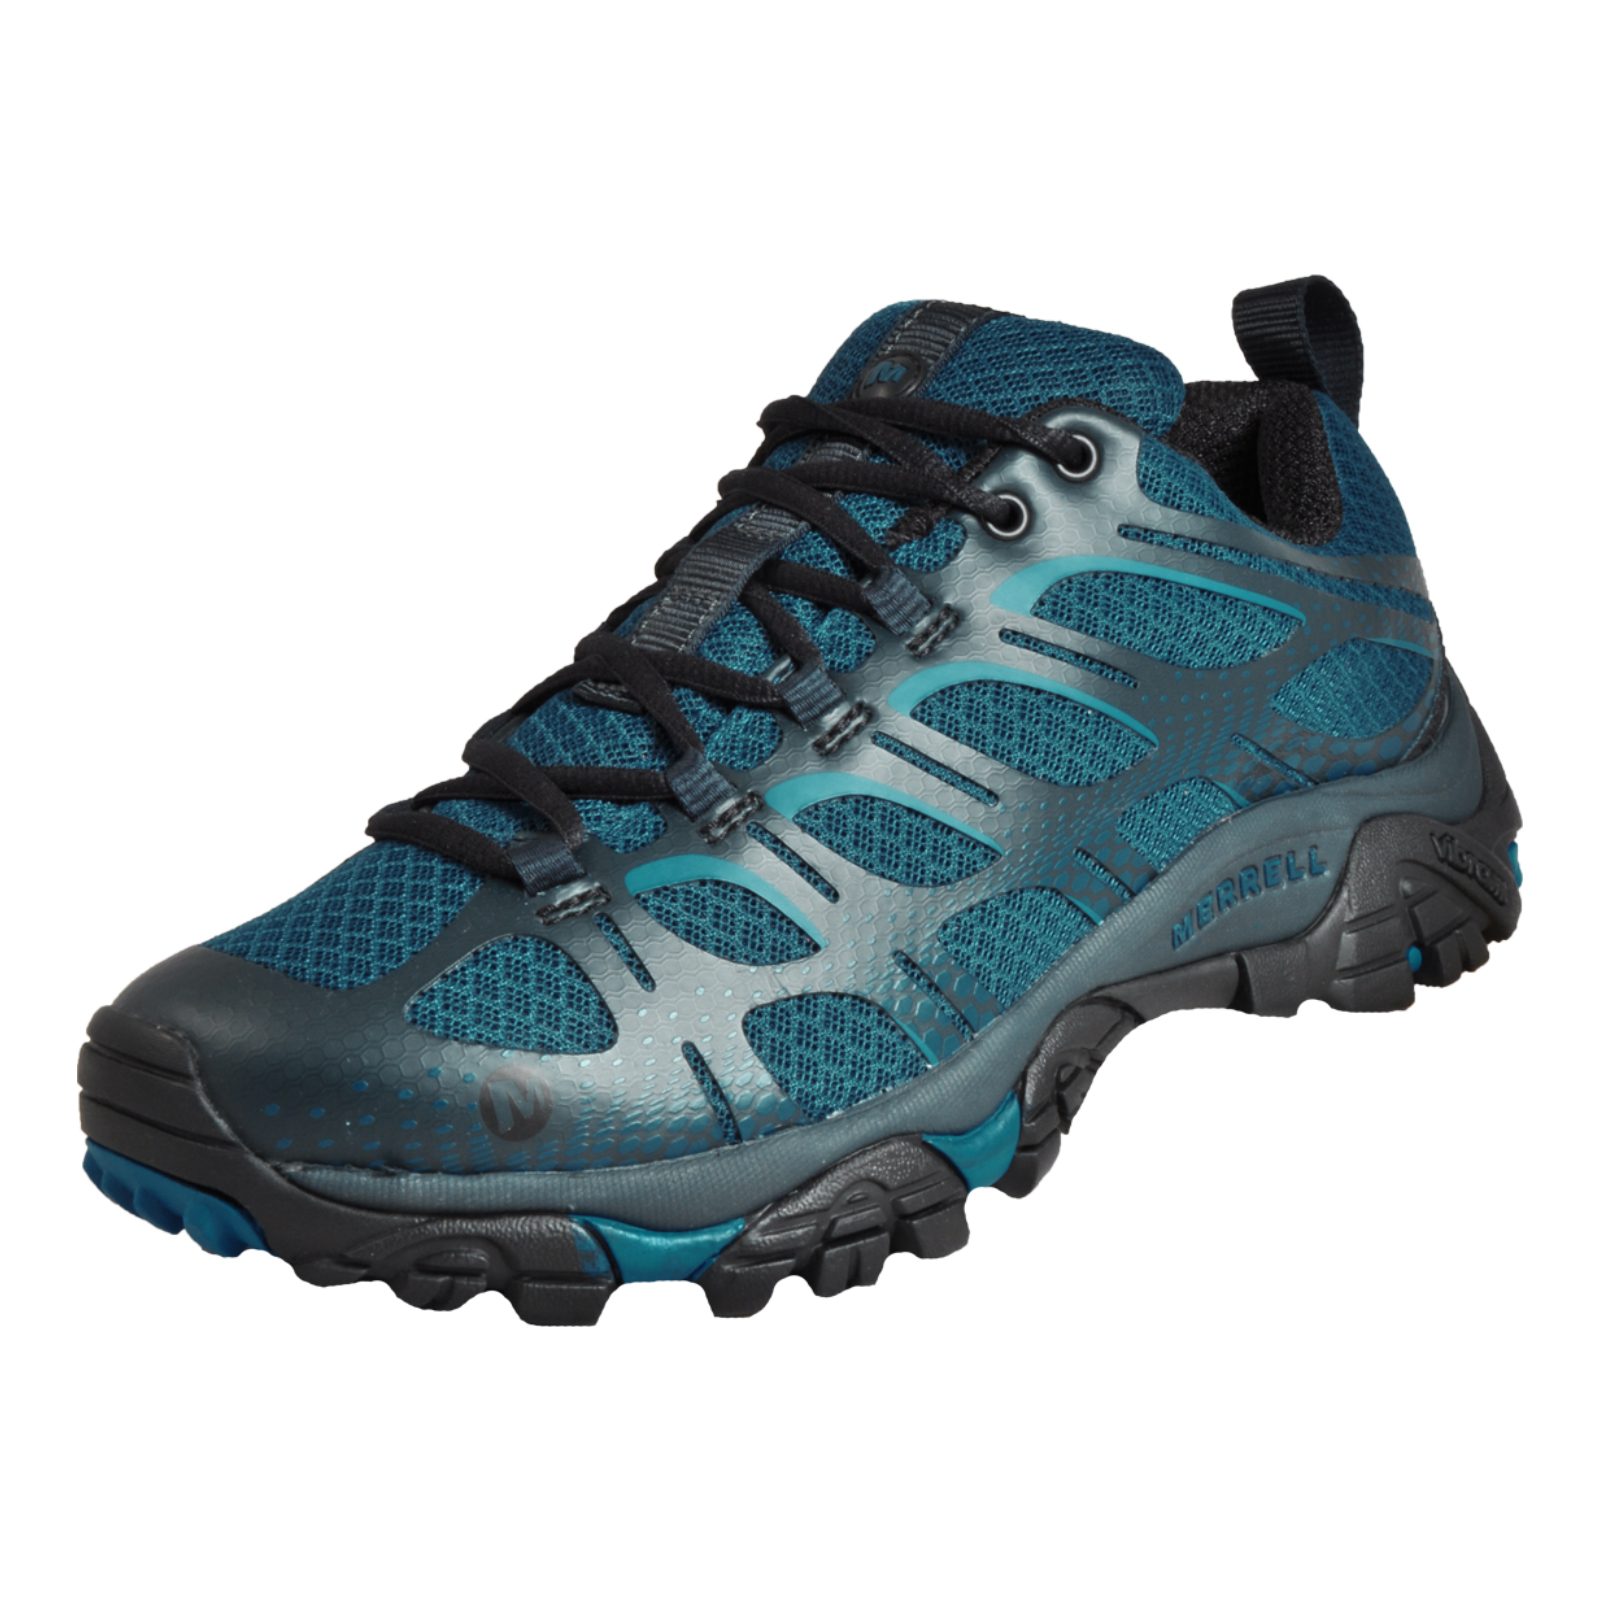 4bb066b785 Details about Merrell Moab Edge All Terrain Men's Outdoor Hiking Walking  Shoes Blue